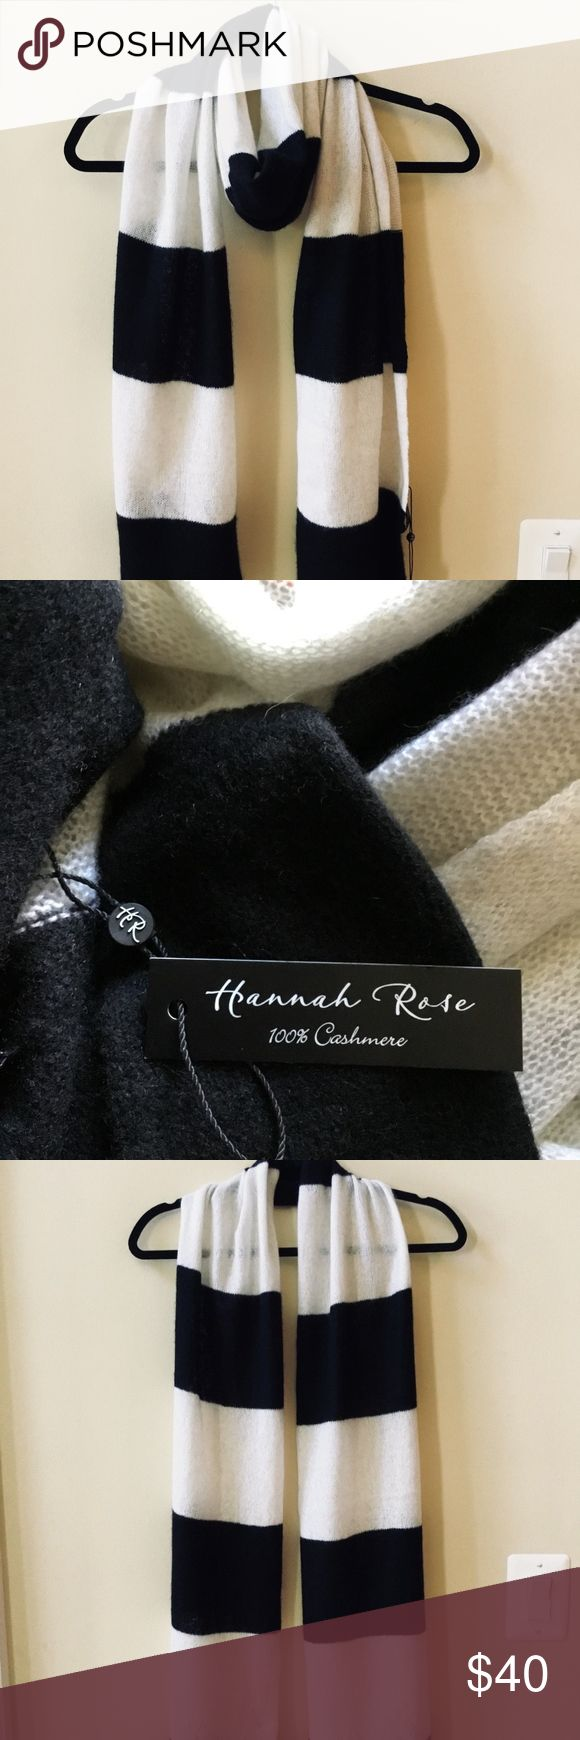 """Nwt Hannah Rose Black/Ivory 100% Cashmere Scarf NWT HANNAH ROSE SCARF BLACK/IVORY STRIPED  LENGTH: 72"""" WIDTH: 12"""" 100% CASHMERE HAND WASH WARM Hannah Rose Accessories Scarves & Wraps"""